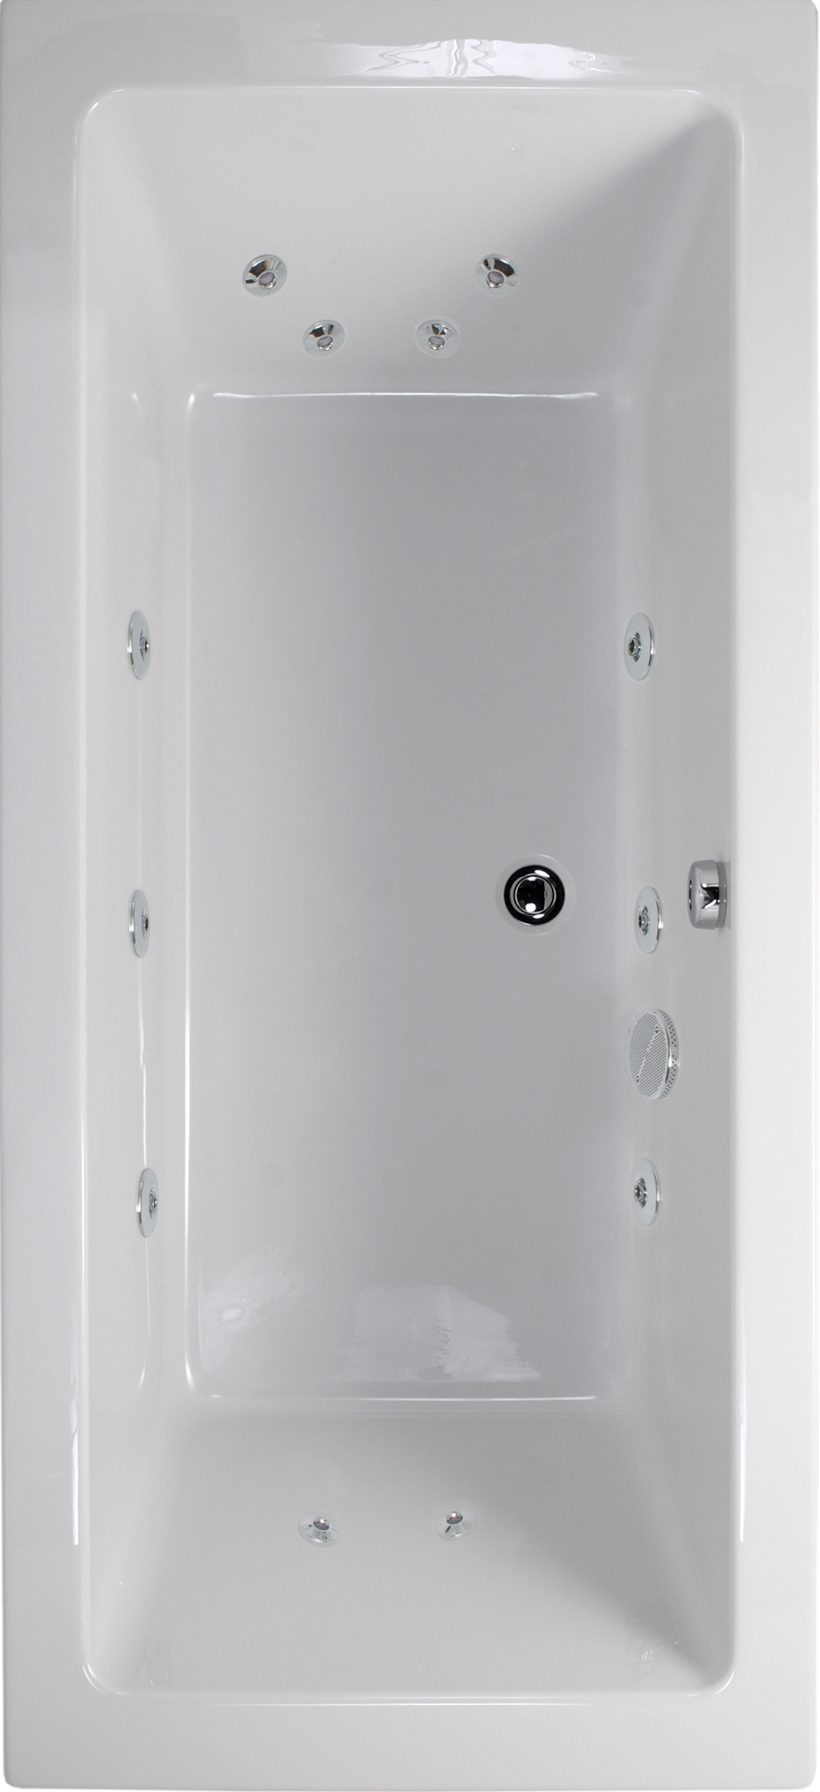 Duo 1900x900 Double Ended 12 Jet Whirlpool Bath - Extra Deep